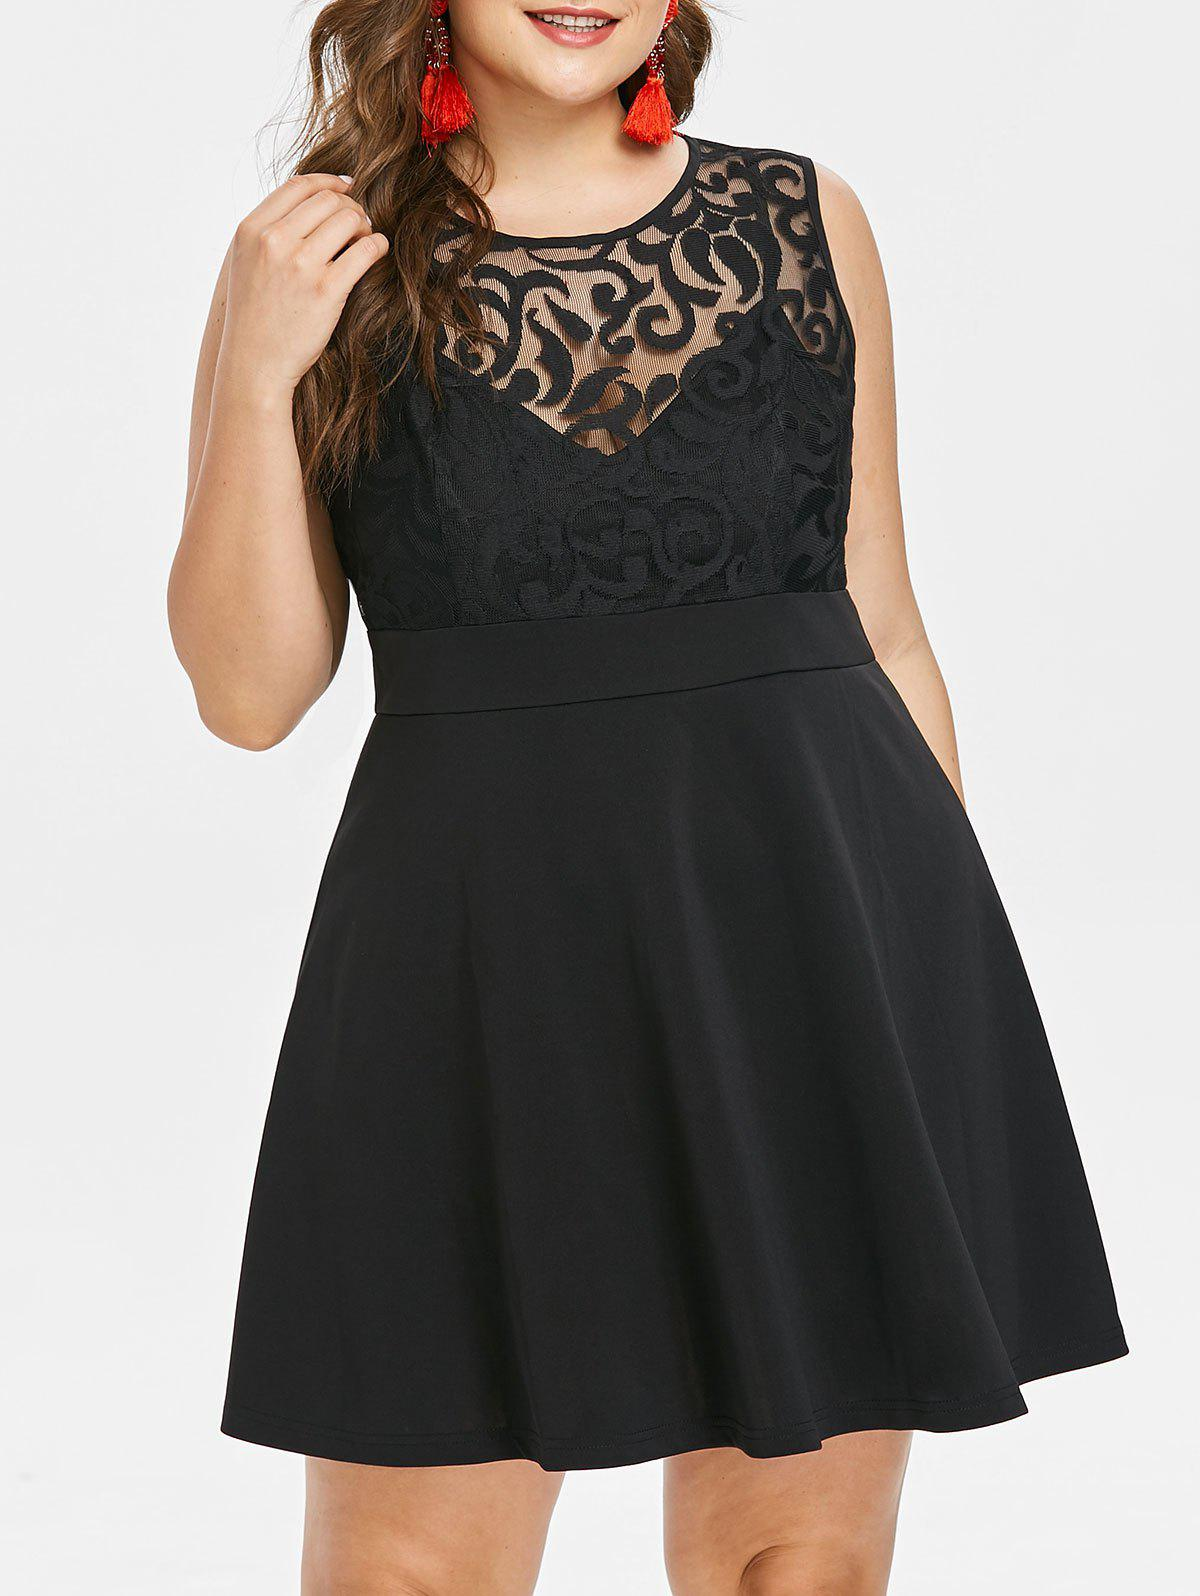 New Plus Size Mesh Panel Sleeveless Dress